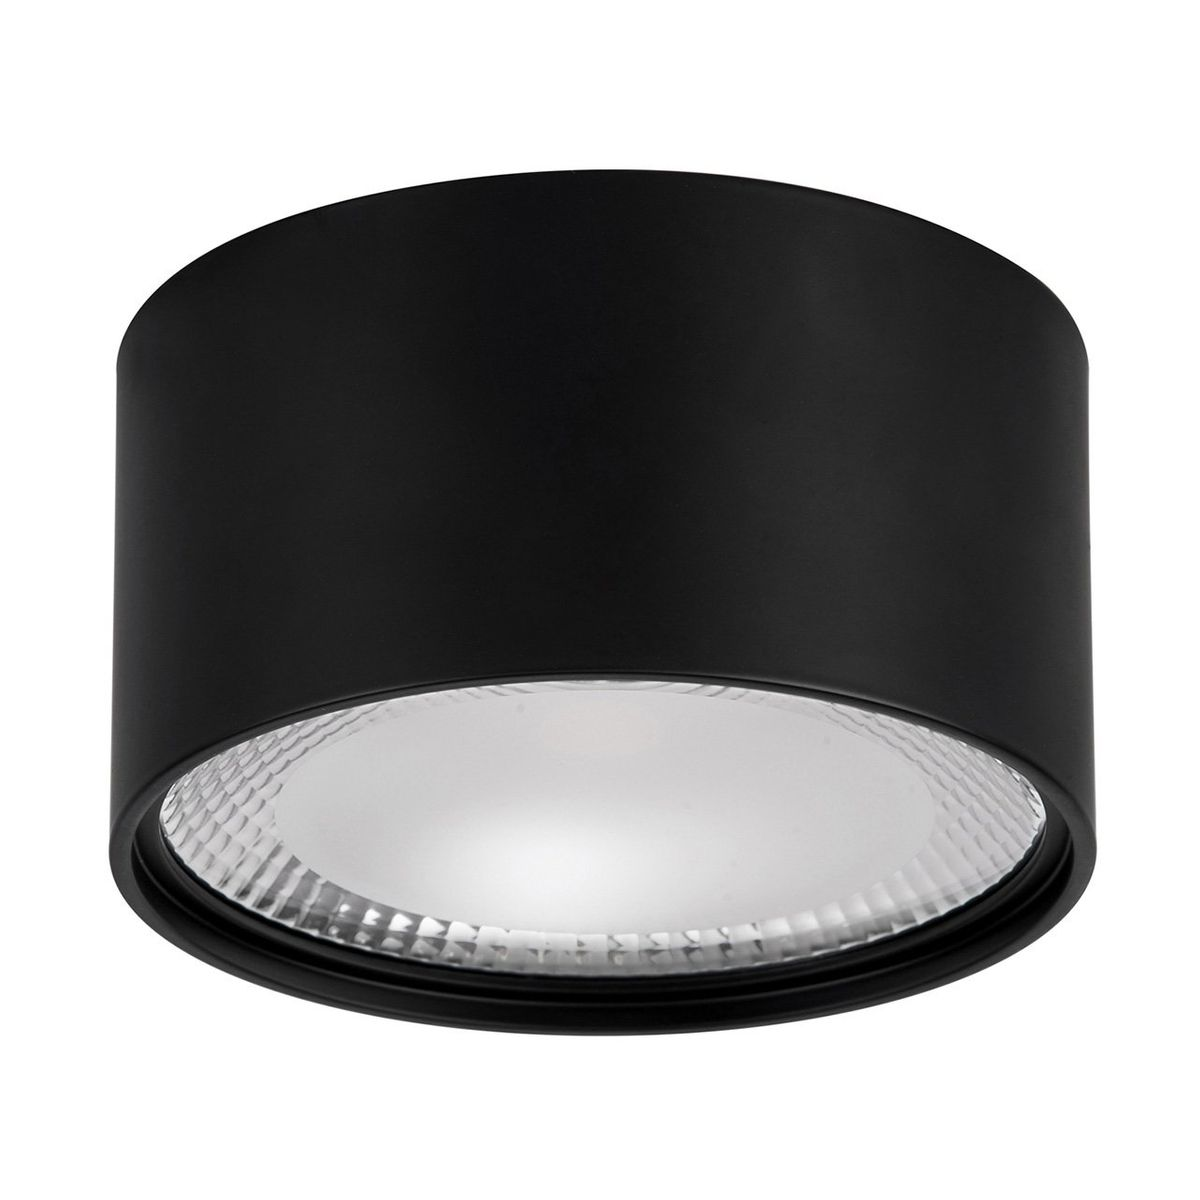 HV5805-BLK - NELLA Black 18w Surface Mounted LED Downlight – Bild 1